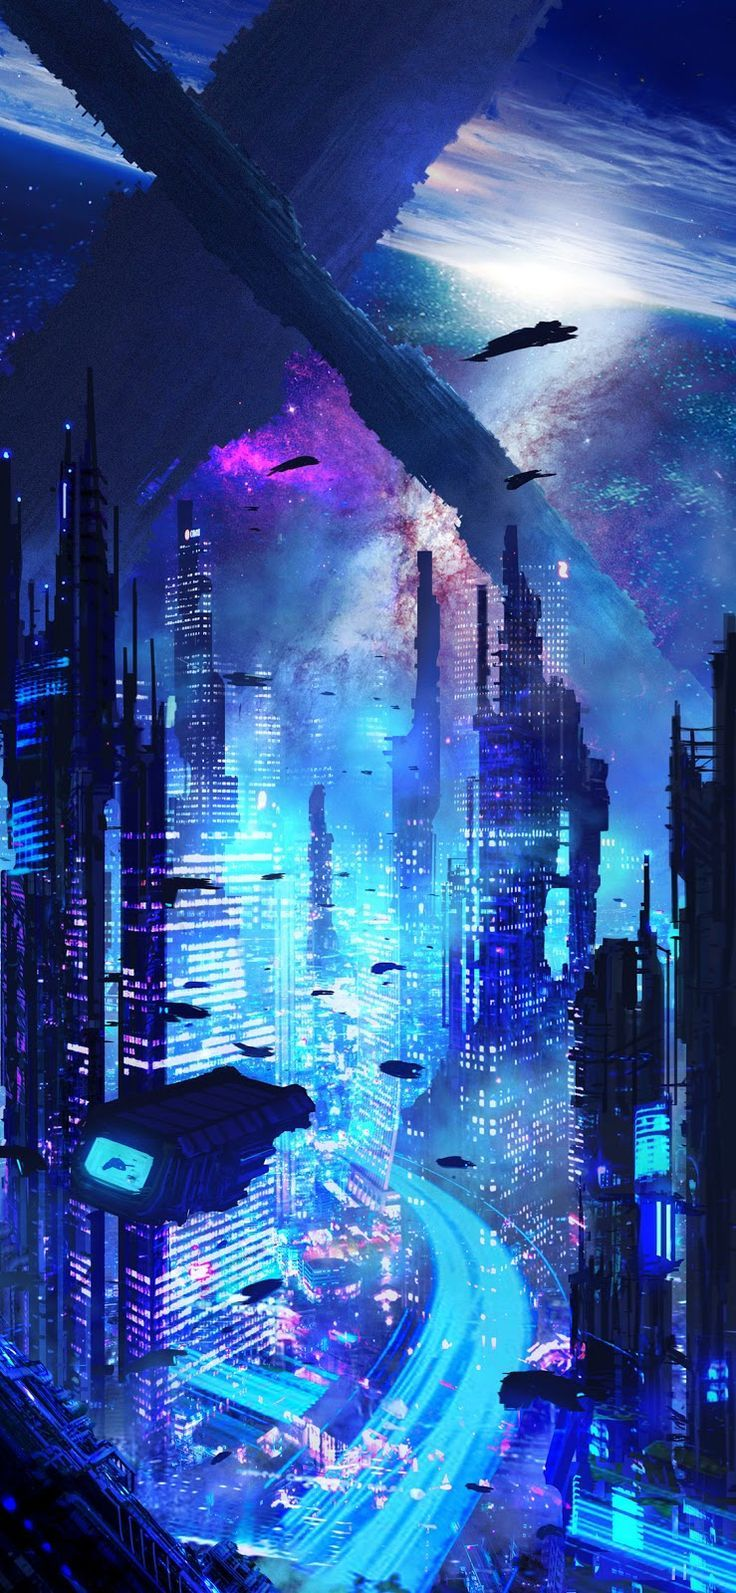 Fictional City Iphone X City Fictional Iphone Wallpapers 4k Free Iphone Mobile Games Cyberpunk City Futuristic City Futuristic Art